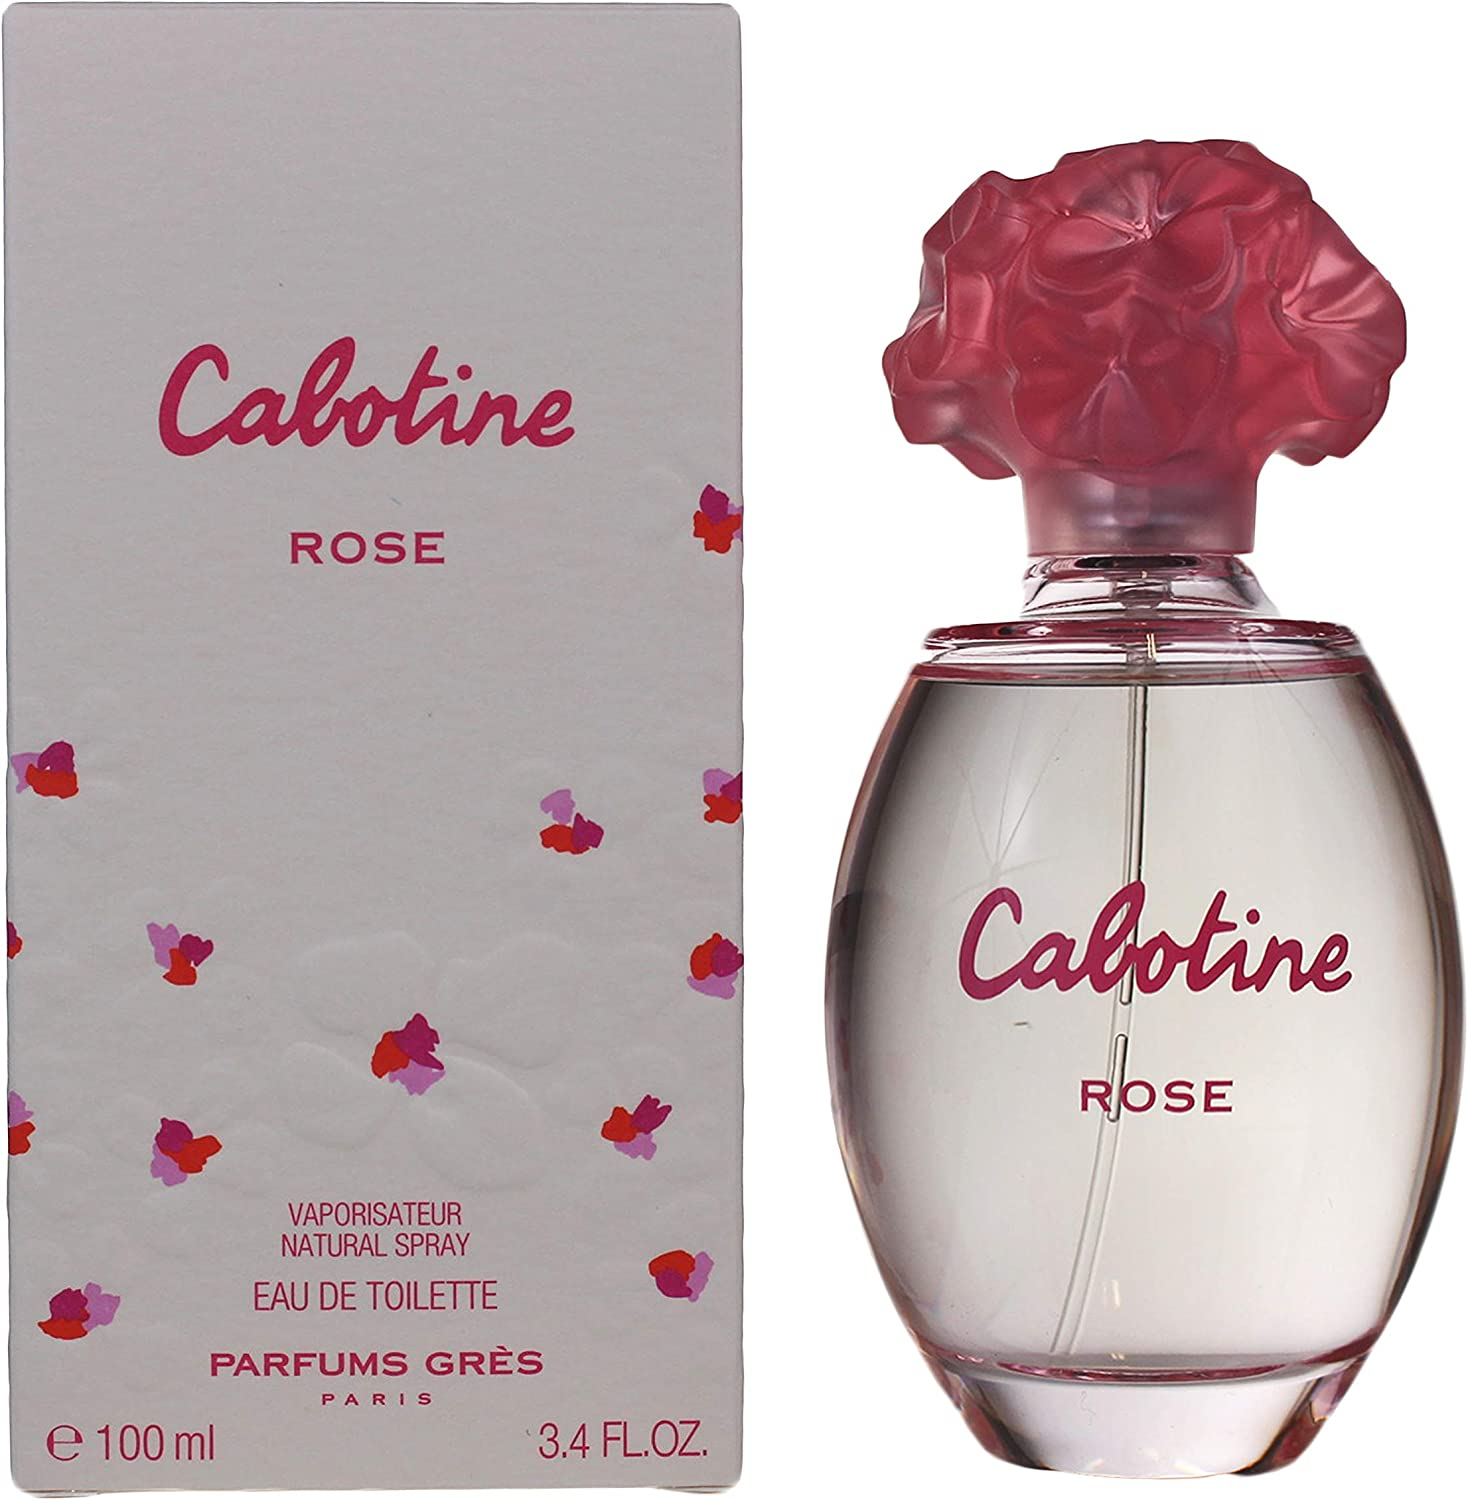 Gres Cabotine Rose Agua de Colonia - 100 ml